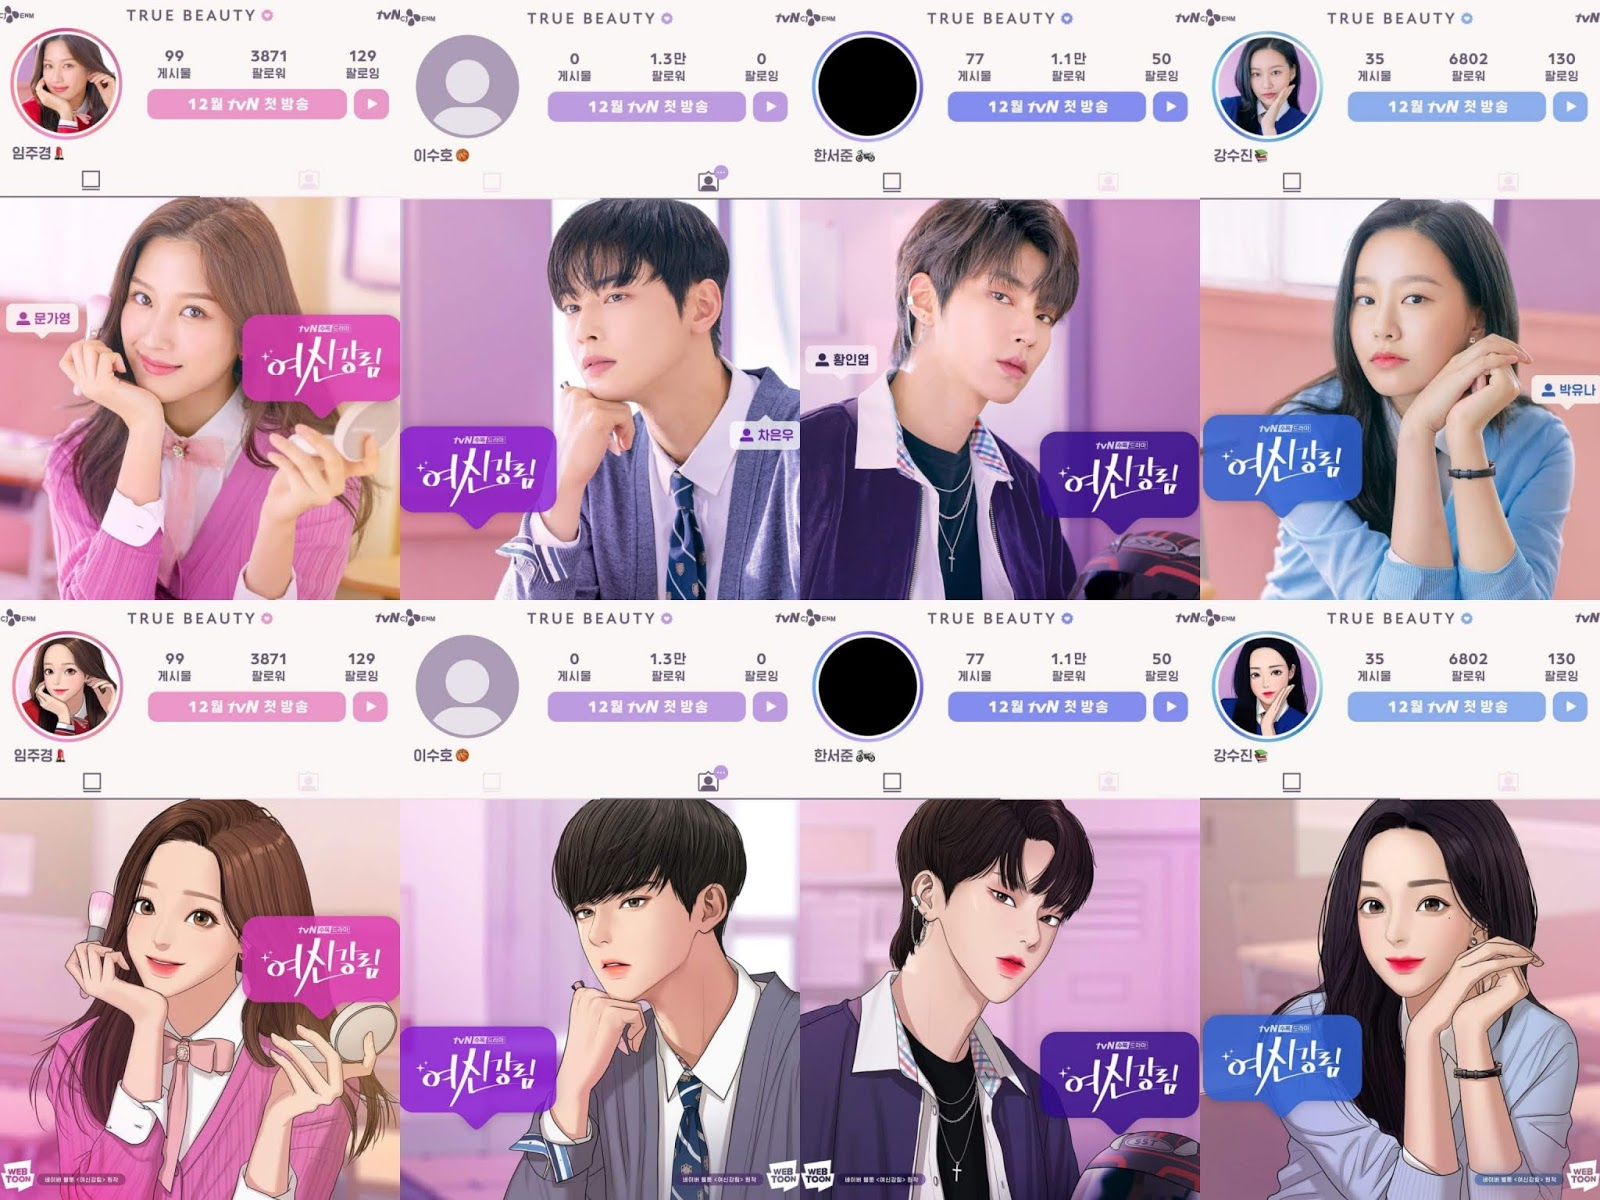 Drama ̗¬ì‹ ê°•ë¦¼ True Beauty Descubre La Verdadera Belleza En Tvn Ba Na Na Noticias De K Pop En Espanol The following series true beauty is a 2020 korean drama starring moon ka young, cha eun woo and hwang in yup. drama 여신강림 true beauty descubre